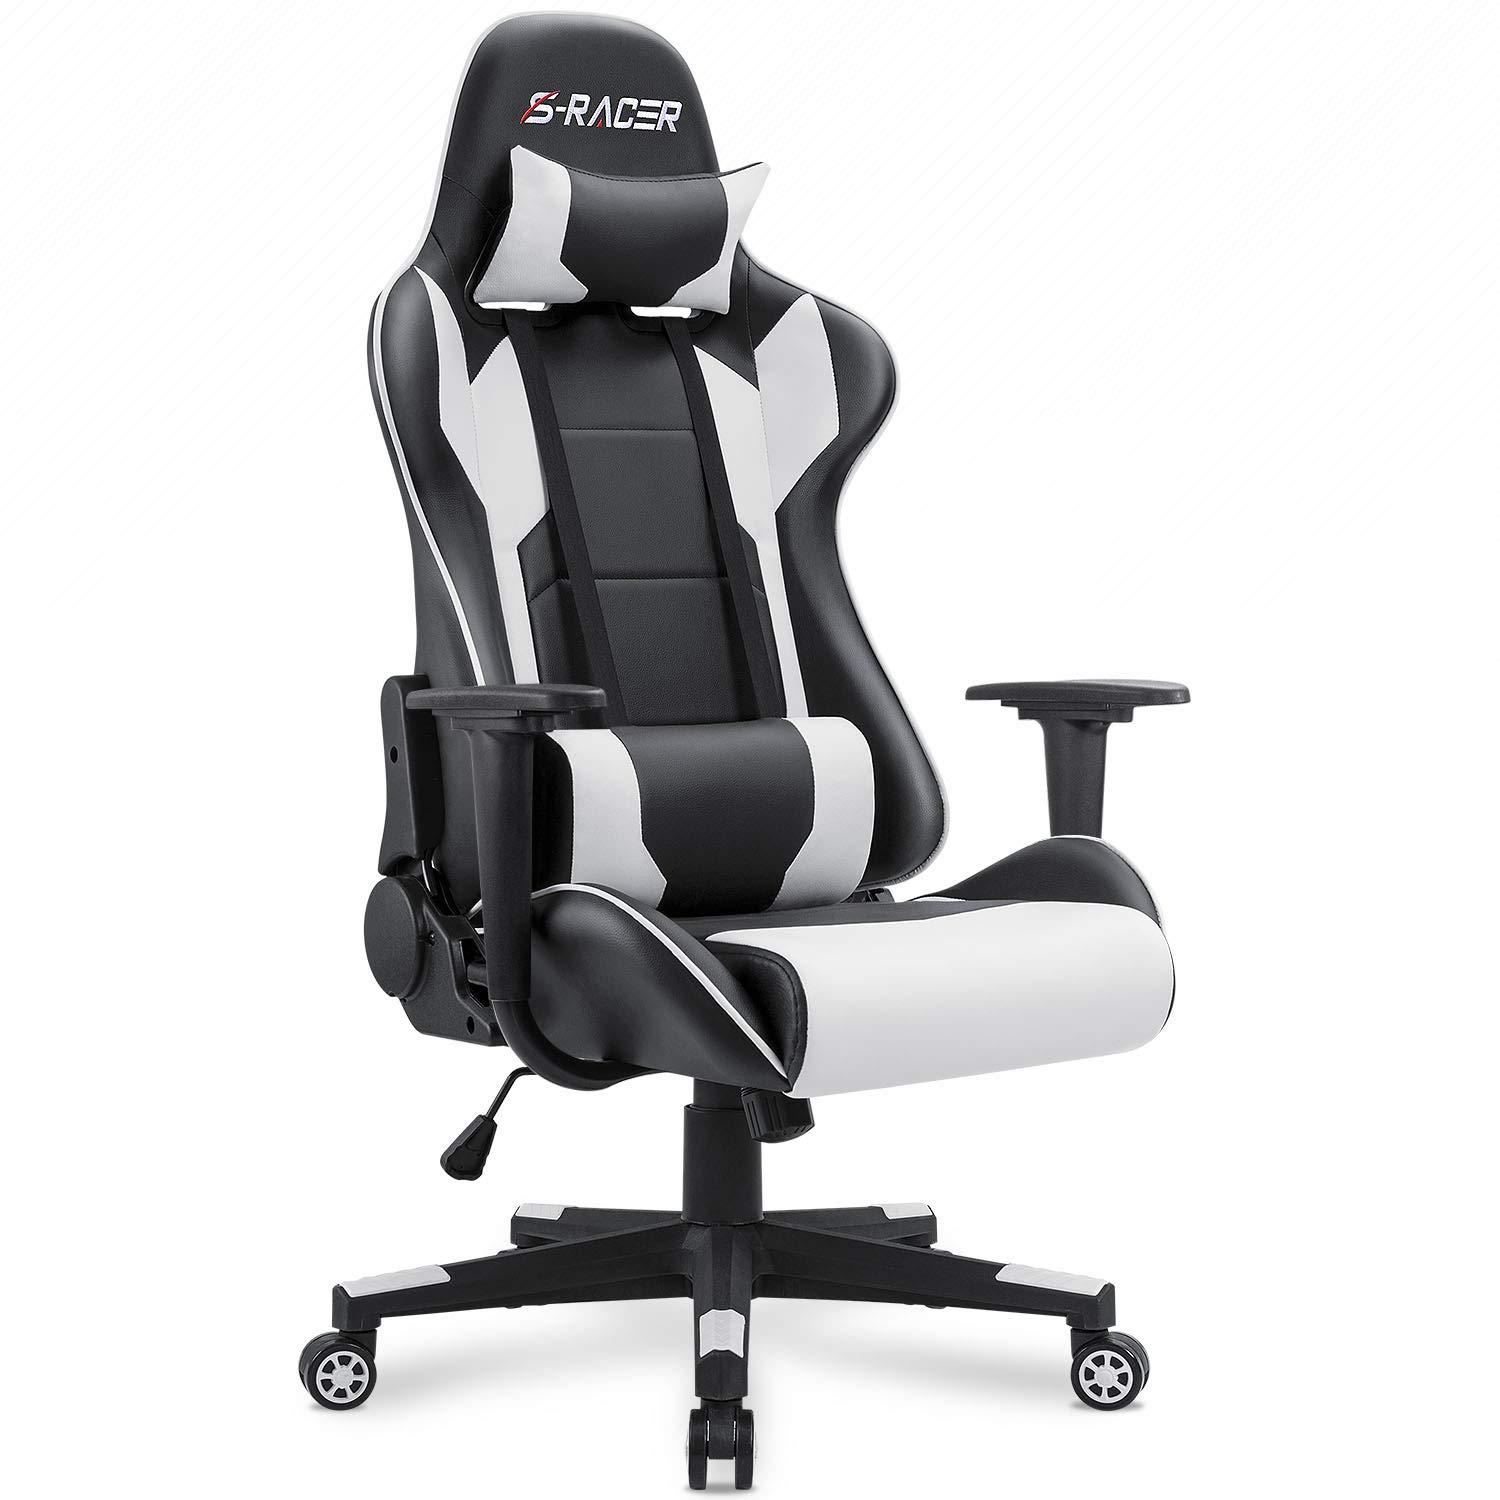 Homall Gaming Chair Office Chair High Back Computer Chair PU Leather Desk Chair PC Racing Executive Ergonomic Adjustable Swivel Task Chair with Headrest and Lumbar Support (White) by Homall